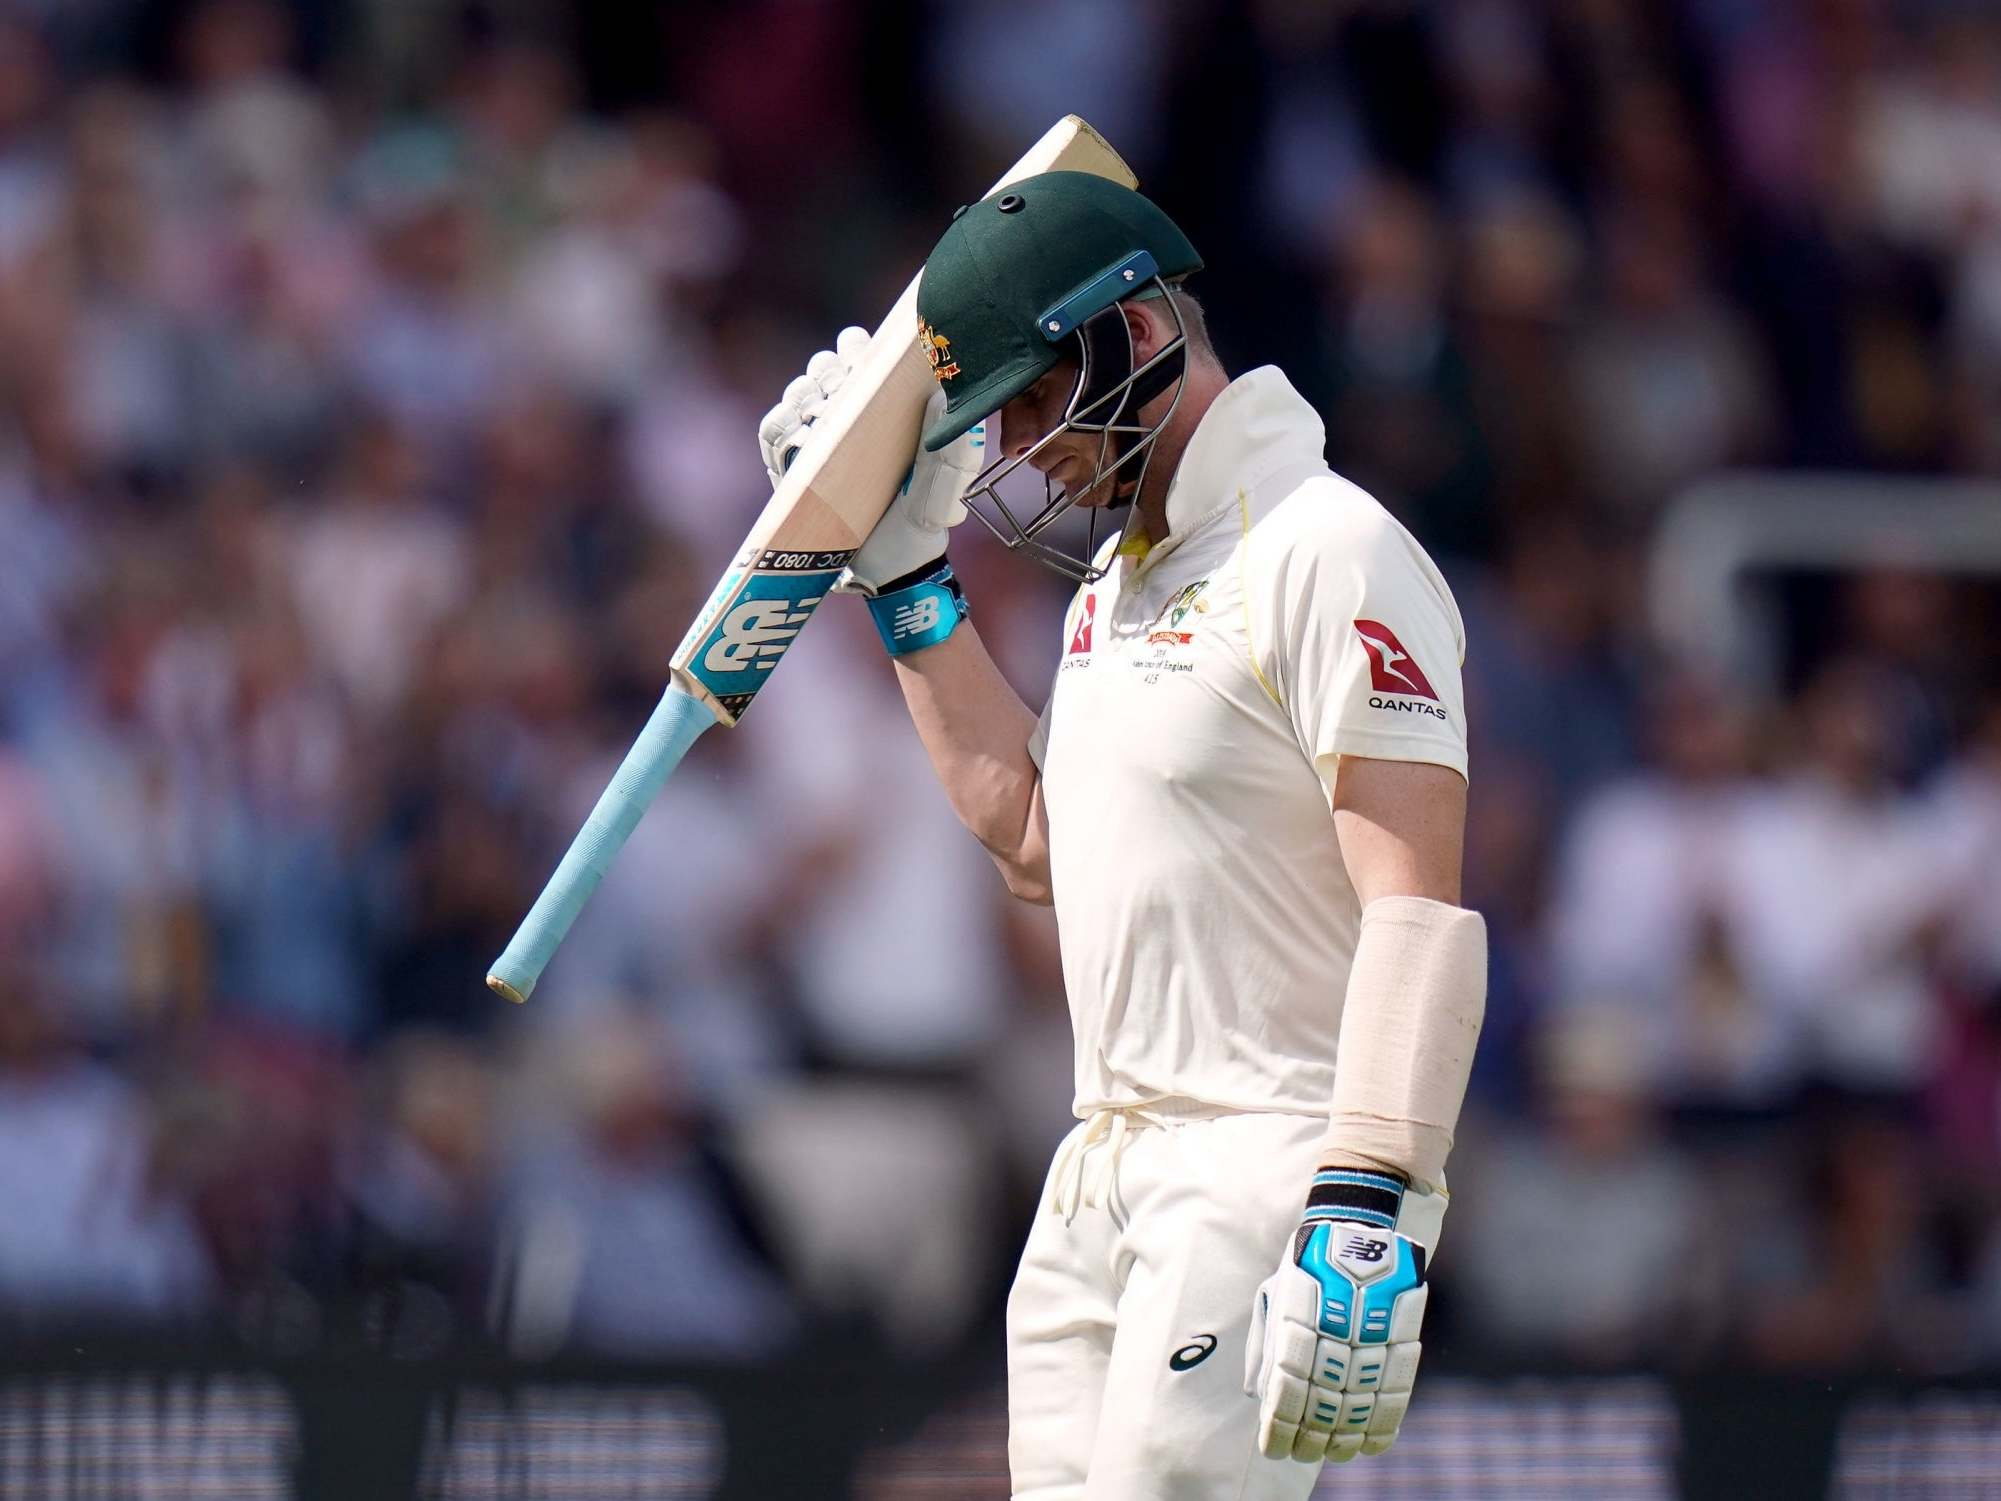 Ashes 2019: Steve Smith's brave defiance in duel with Jofra Archer ignites stop-start second Test